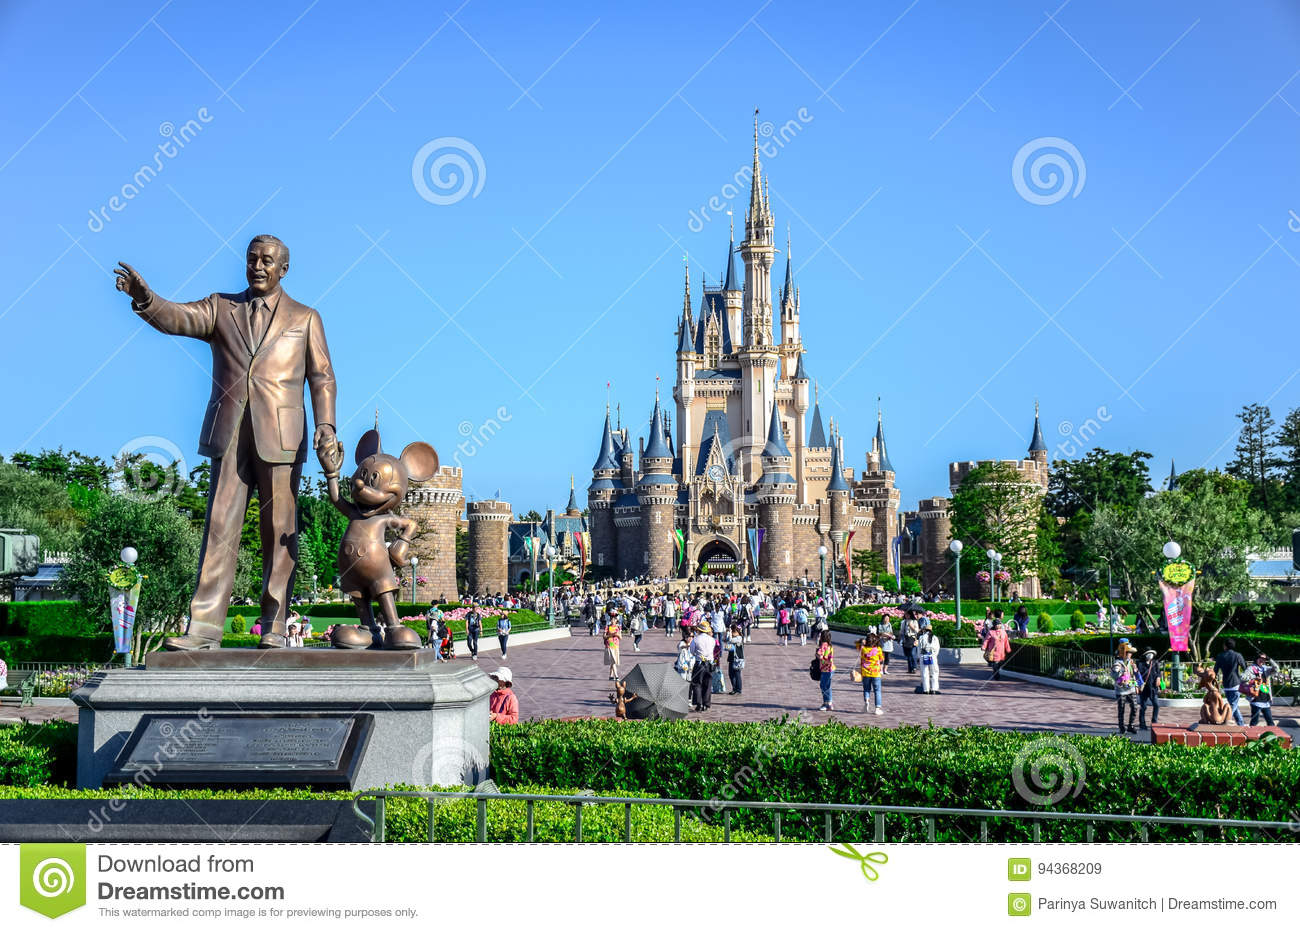 Chiba Japan Walt Disney Statue With View Of Cinderella Castle In